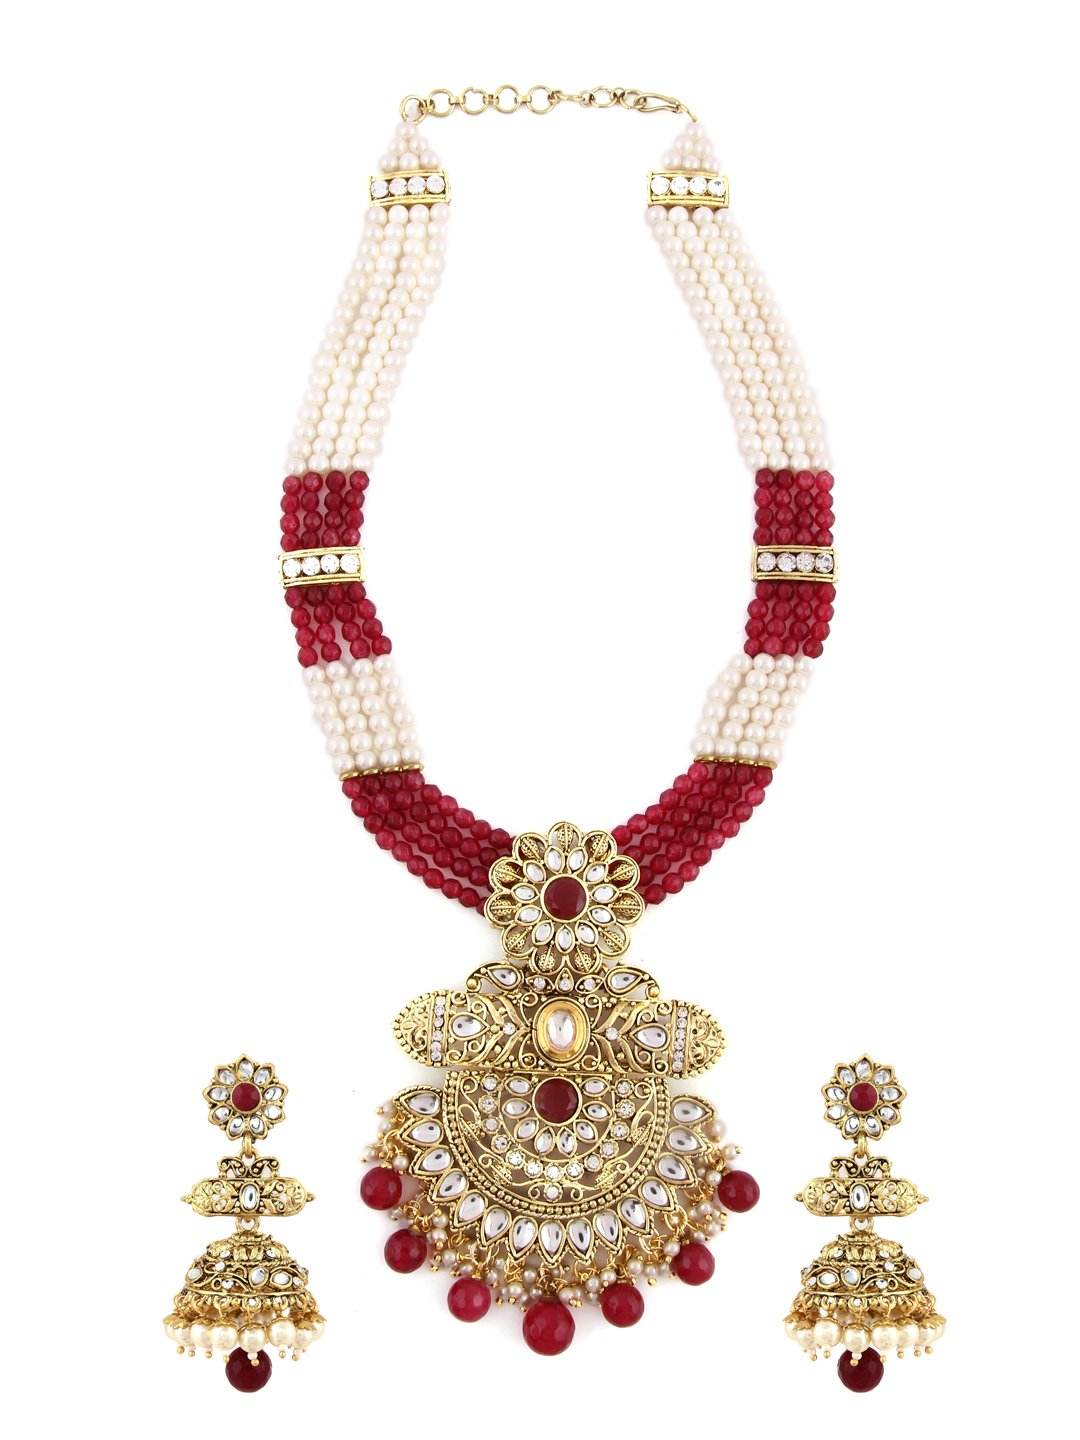 Rubans Gold Plated Traditional Indian Jewelry Set Bollywood Padmavati Ethnic Wedding Bridal Faux Ruby and Rhinestone Handcrafted Long Necklace Set for Women